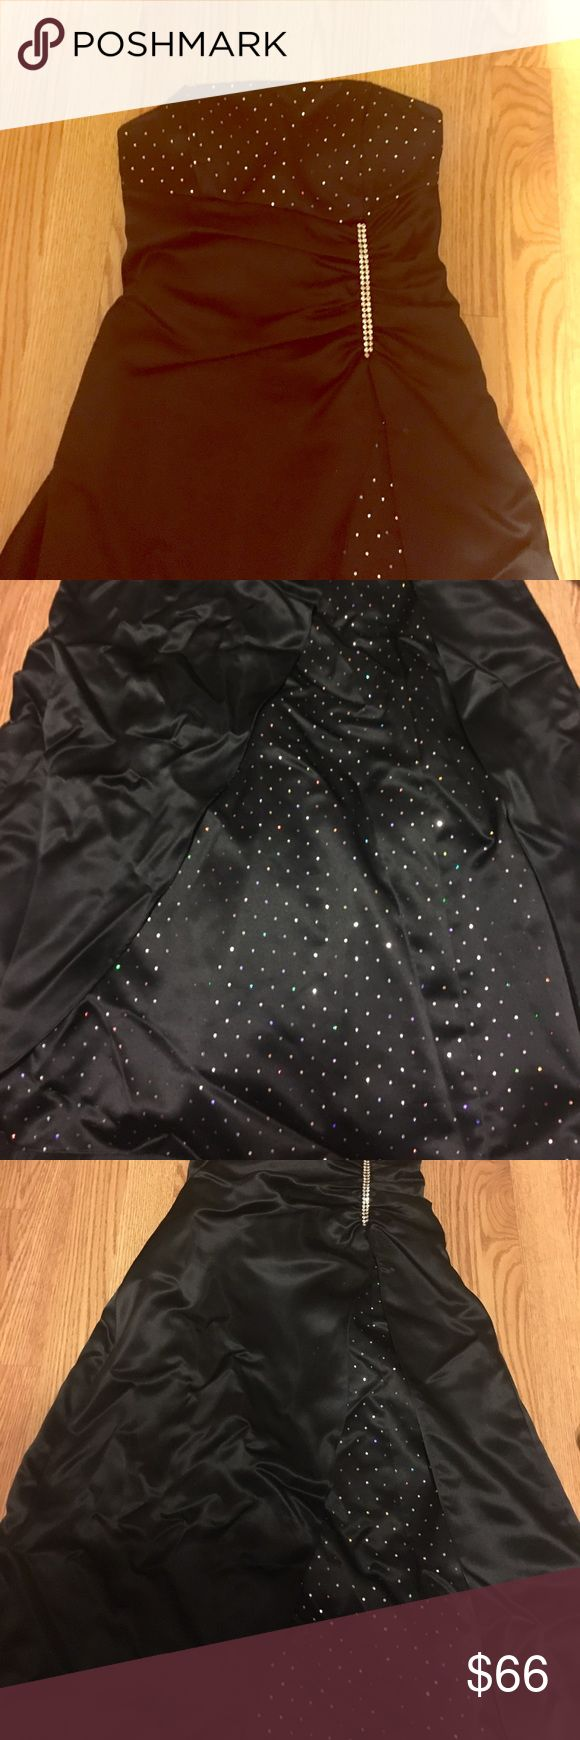 Black evening dress Blondie Nites by Linda Bernell strapless black dress with polka dots in shimmery silver and a strap back. Has a piece of rhinestone to hold it together, very beautiful dress 😊 no signs of wear, however the smallest little white mark on it, but not noticeable at all when I zoomed out. You have to like really look closely to even notice it. I purchased a Dillard's a few years back. Dillard's Dresses